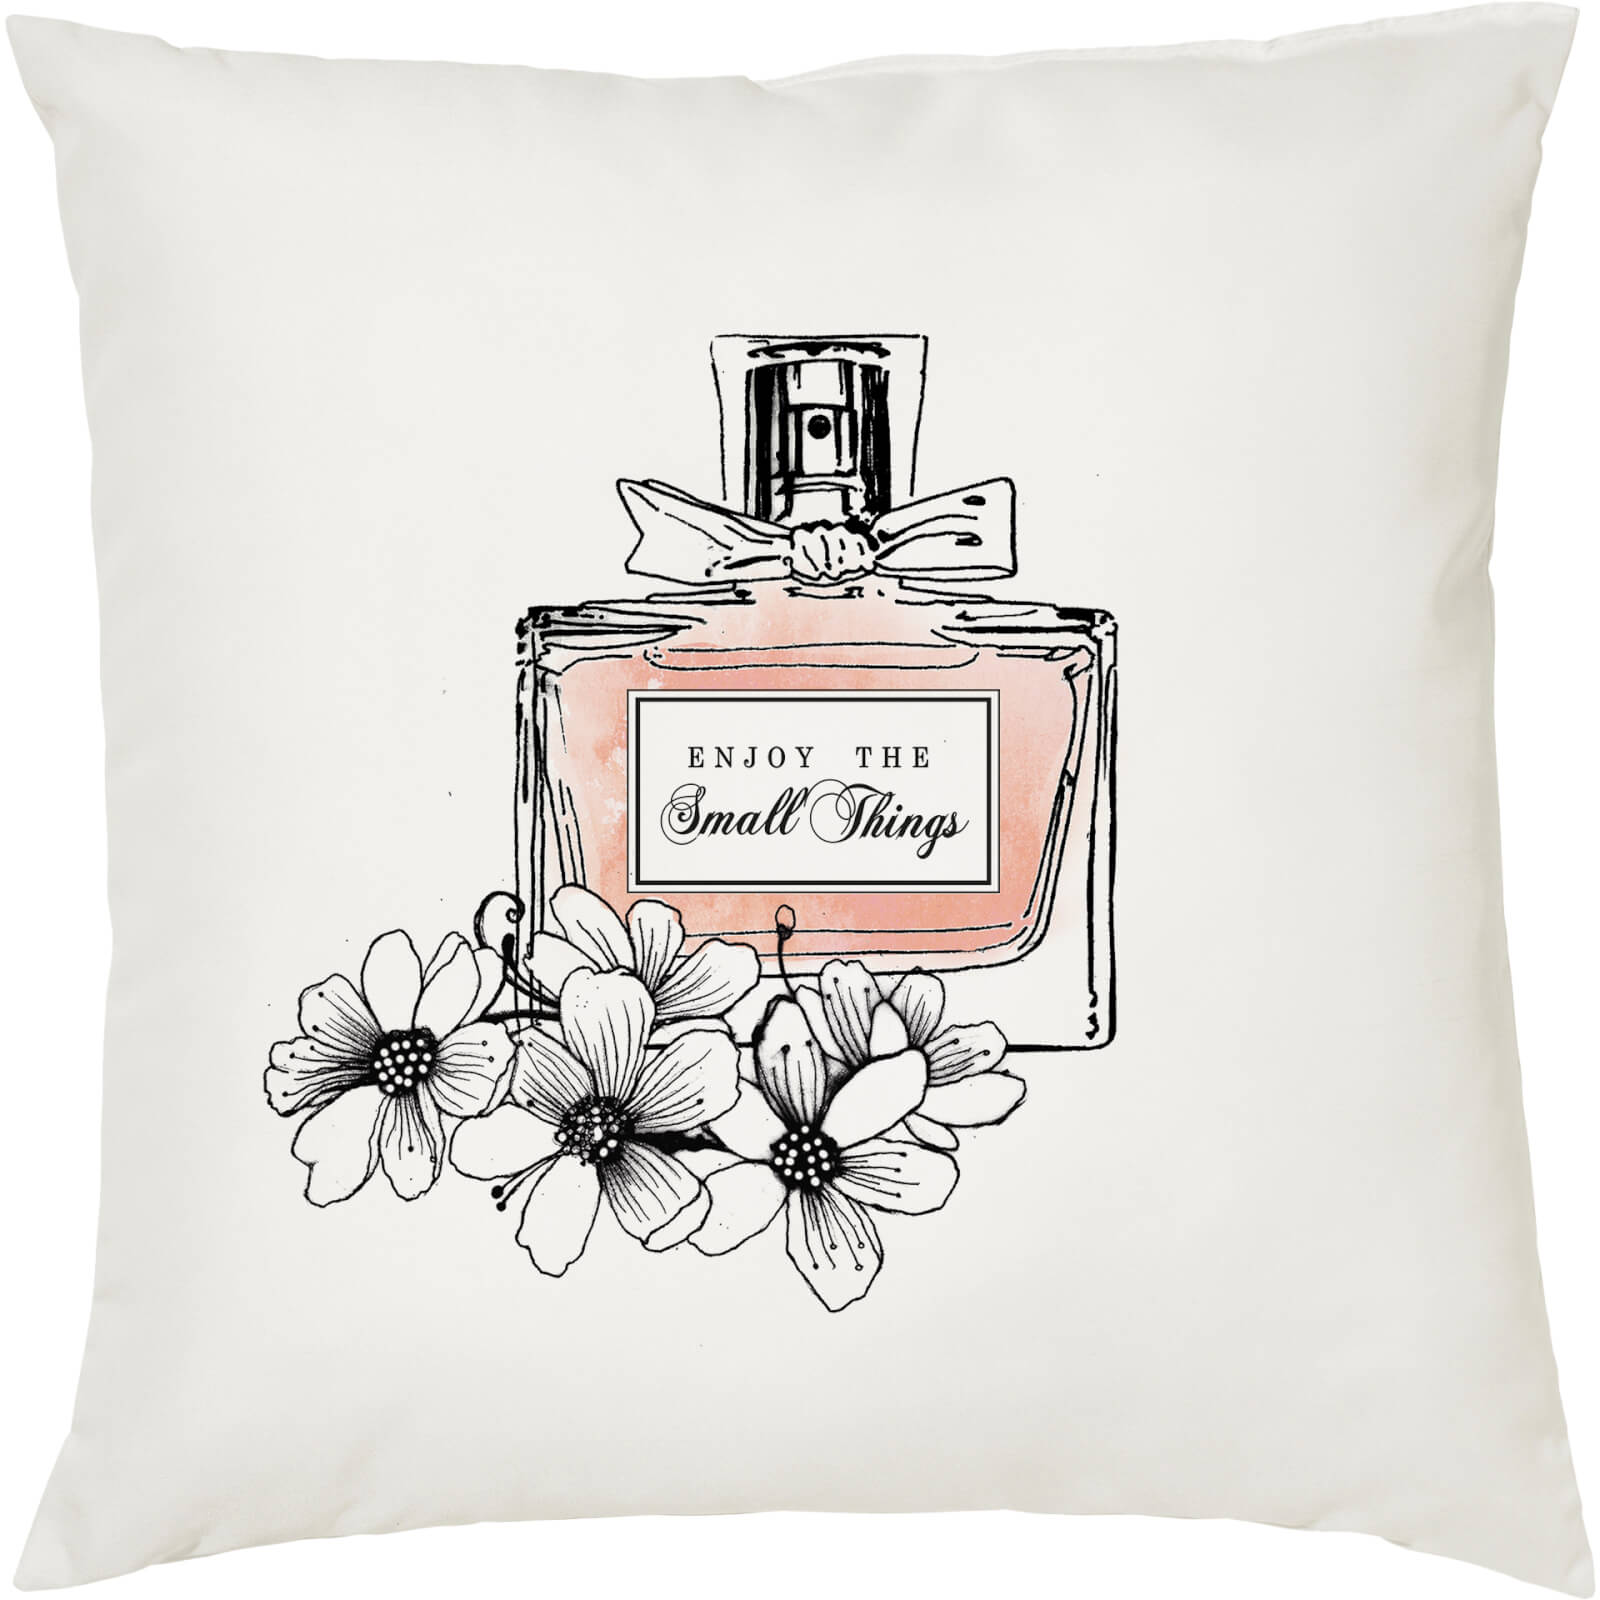 Enjoy The Small Things Cushion - White (45 x 45cm)